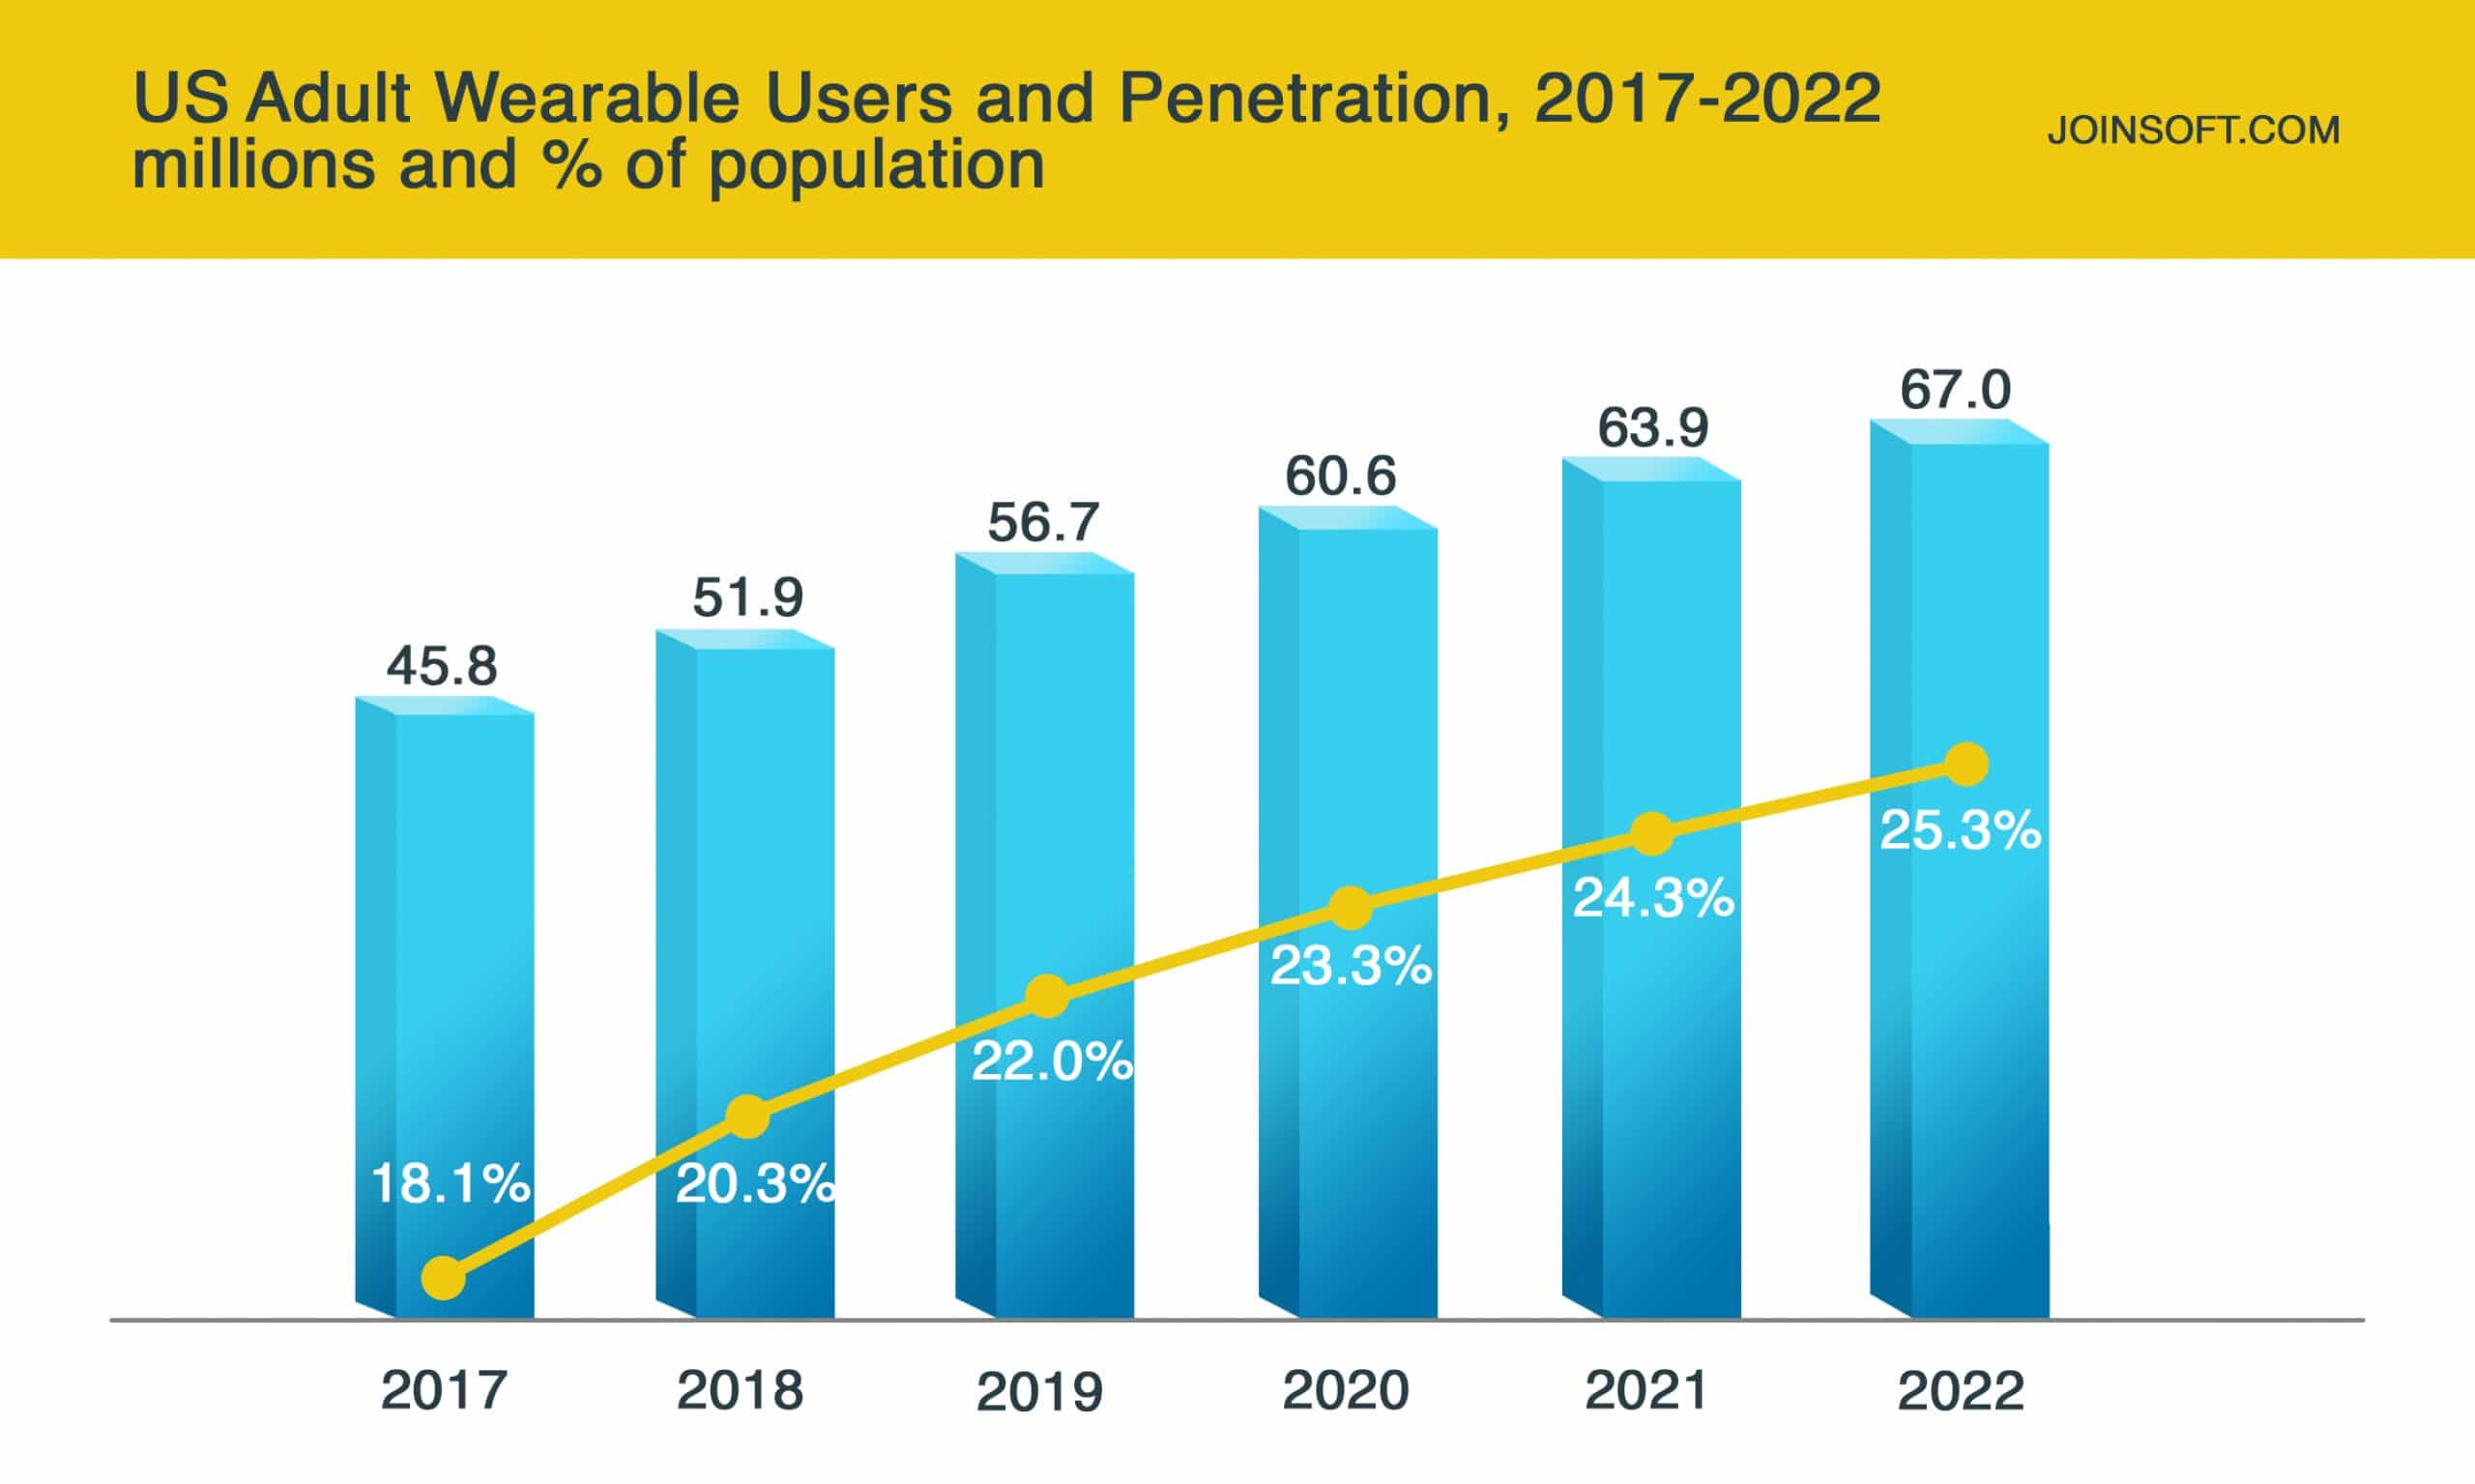 US Adult Wearable Users and Penetration, 2017 - 2022